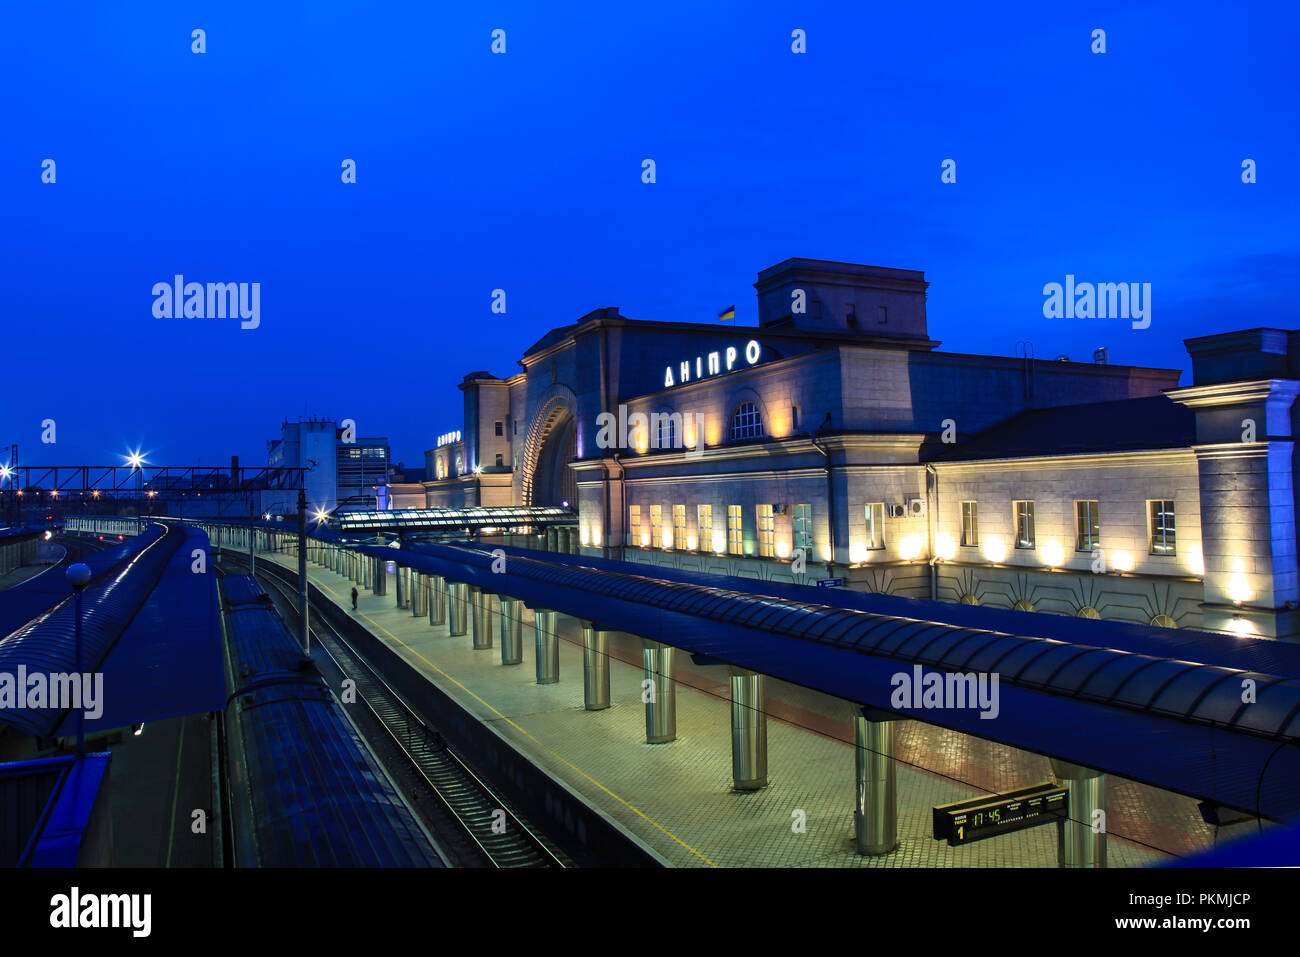 The platform and the building of the railway station with the inscription `Dnipro` in Dnipropetrovsk city at night. Dnepr, Dnepropetrovsk, Ukraine - Stock Image